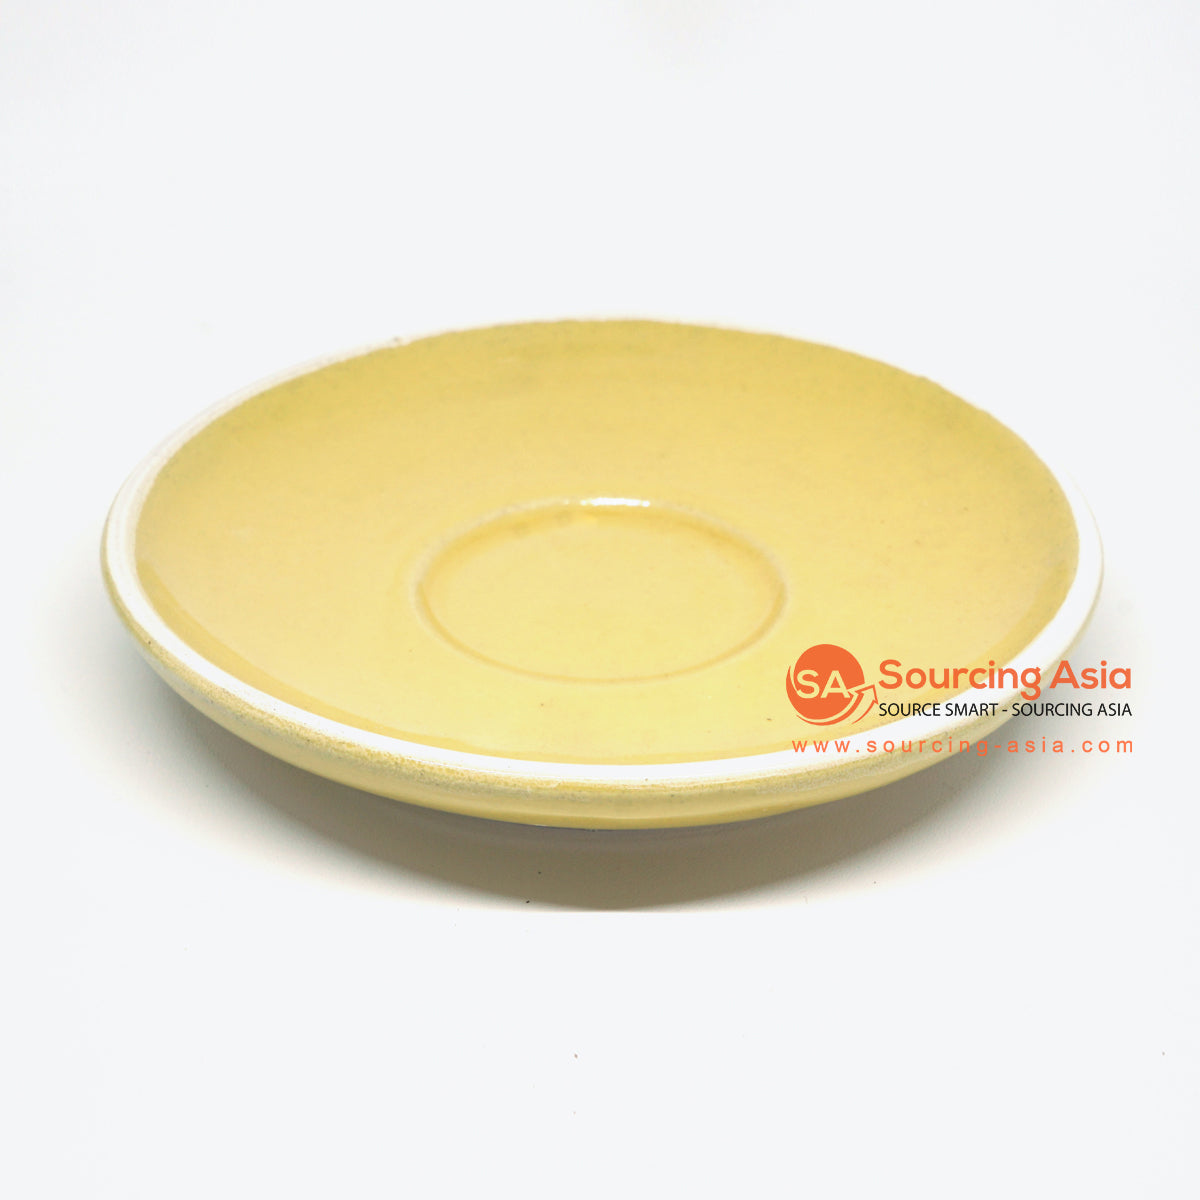 PNJ059 YELLOW AND WHITE EDGES HANDMADE CERAMIC SAUCER